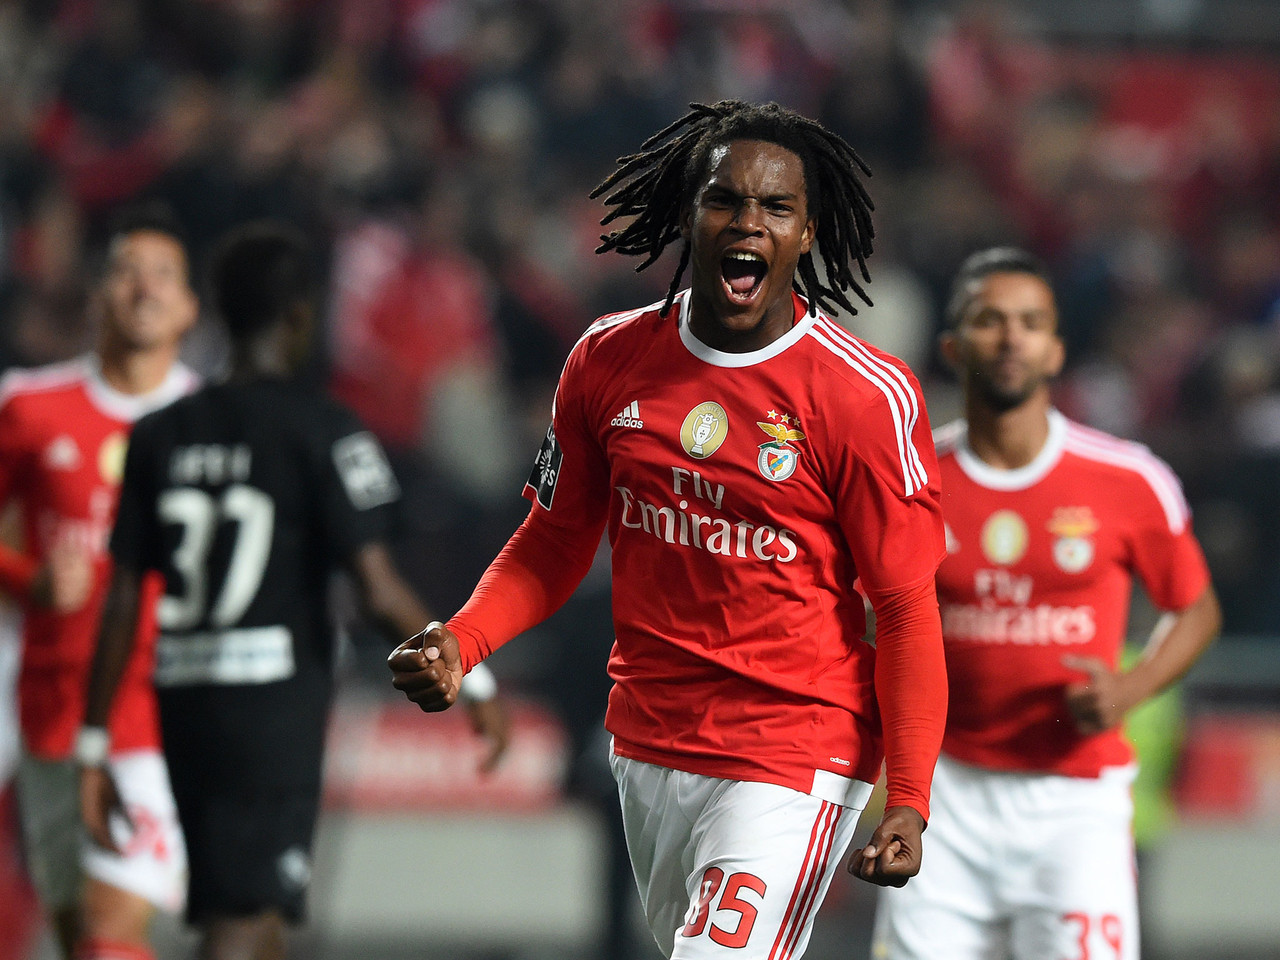 Renato-Sanches-1.jpg